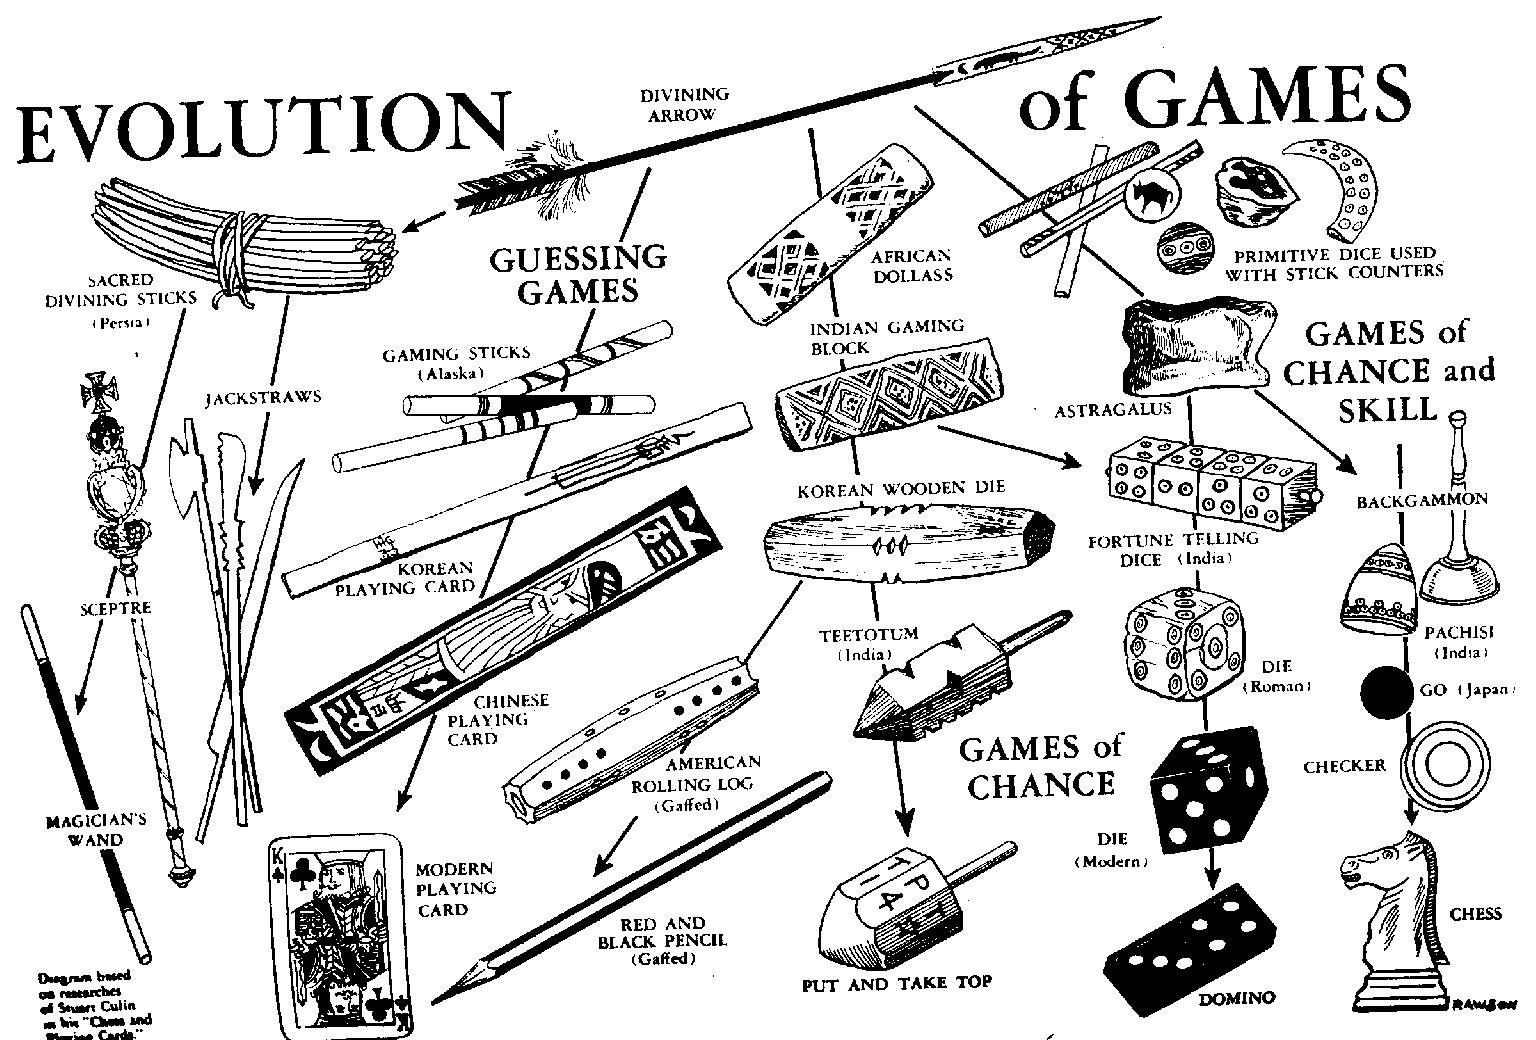 evolution of games Short history of life evolution from ancient fish to modern man packed in classic 3d runner setting with 6 different gameplay types.